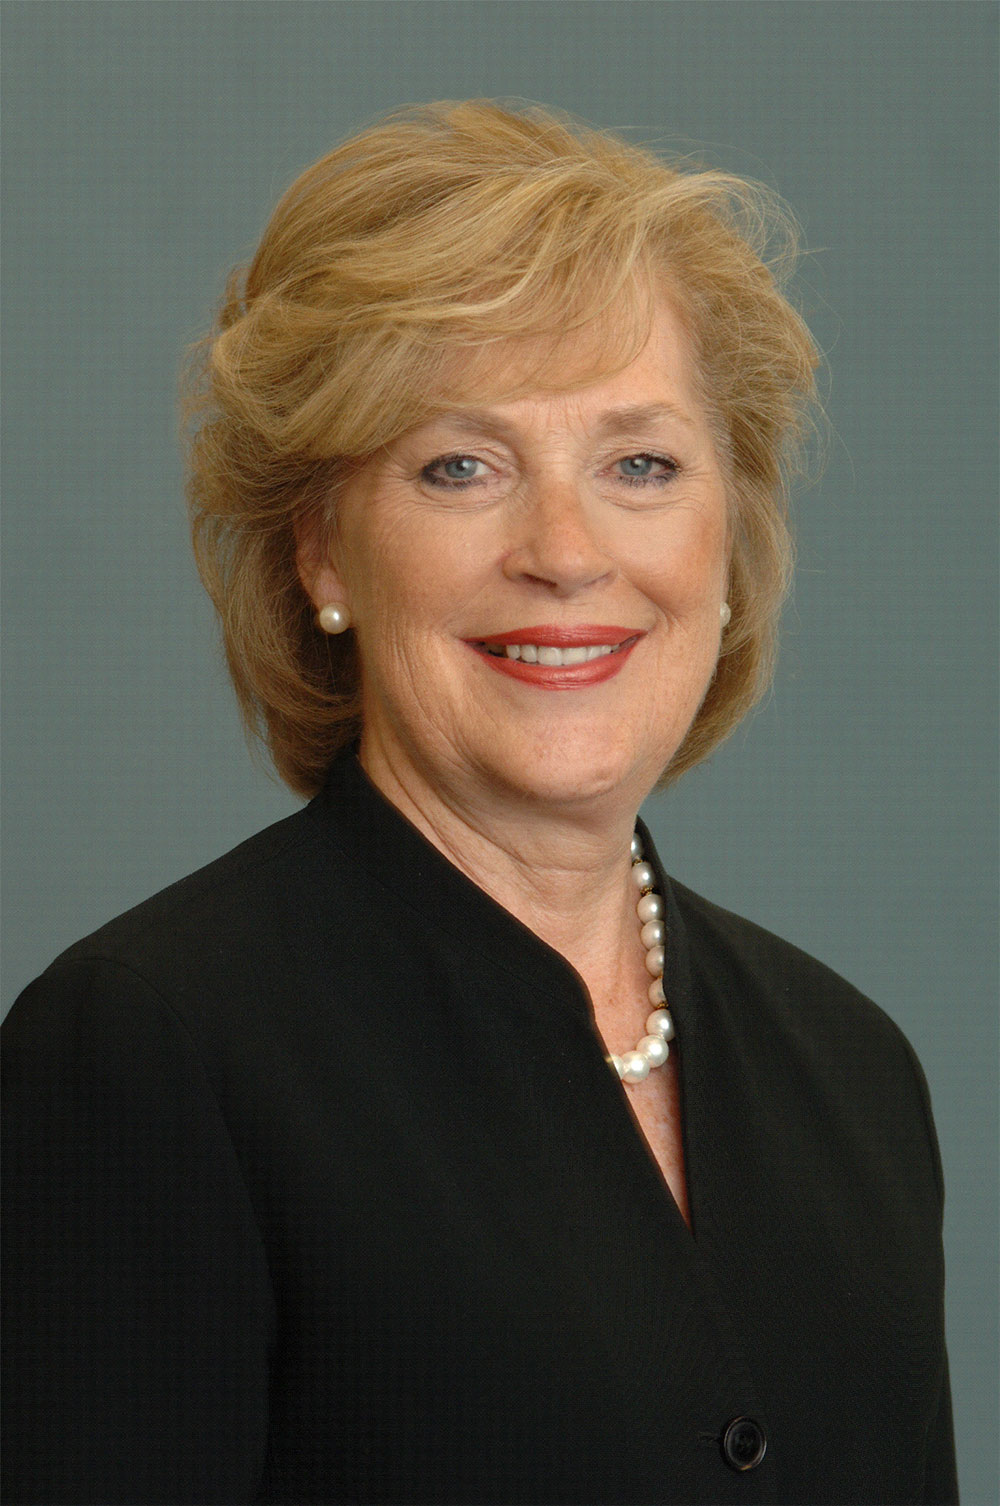 Nancy Davenport-Ennis, Founder of Patient Advocate Foundation